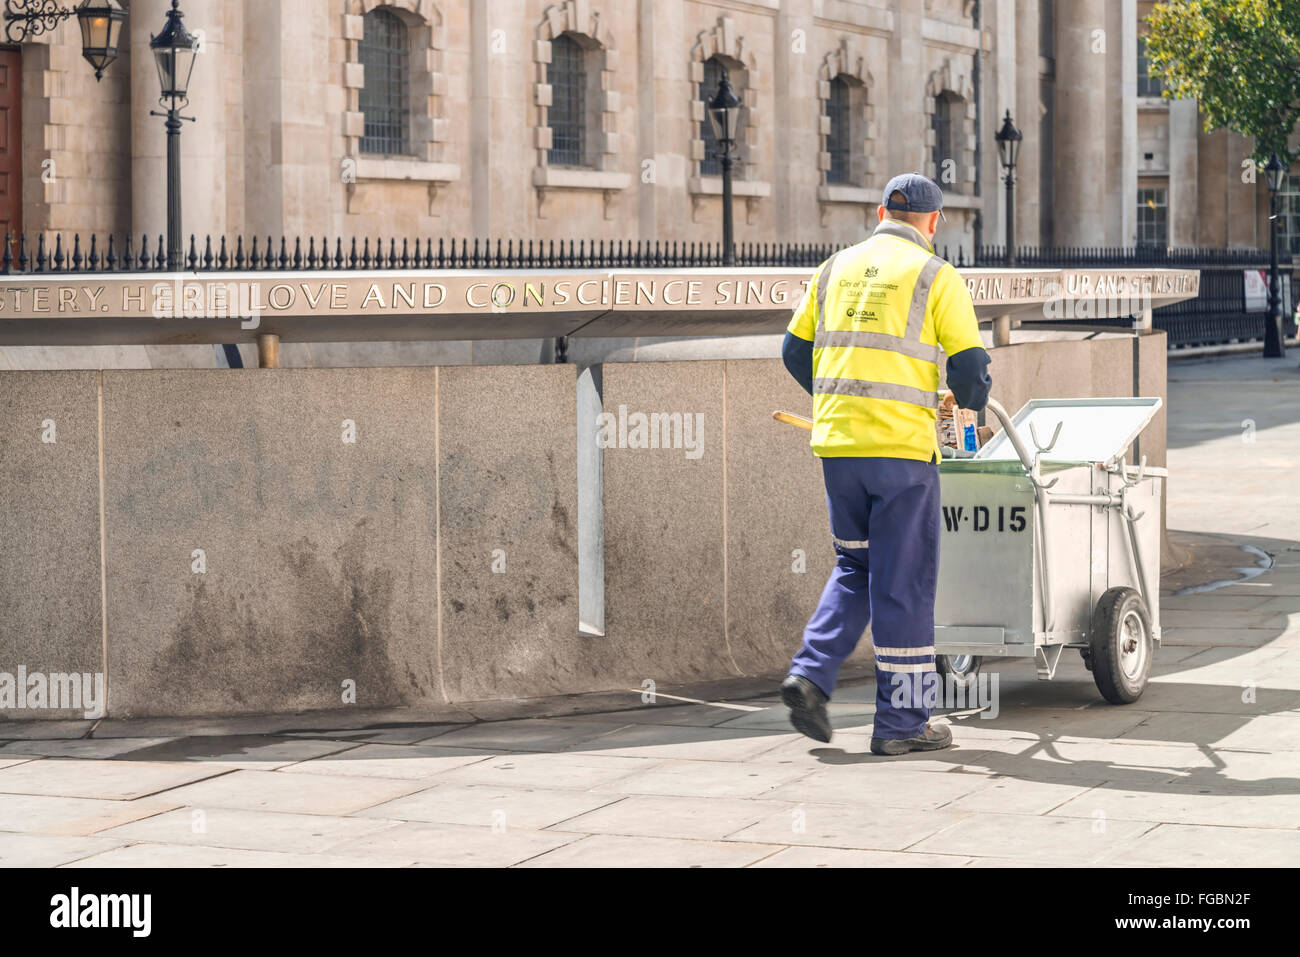 Street cleaner working in London city - Stock Image